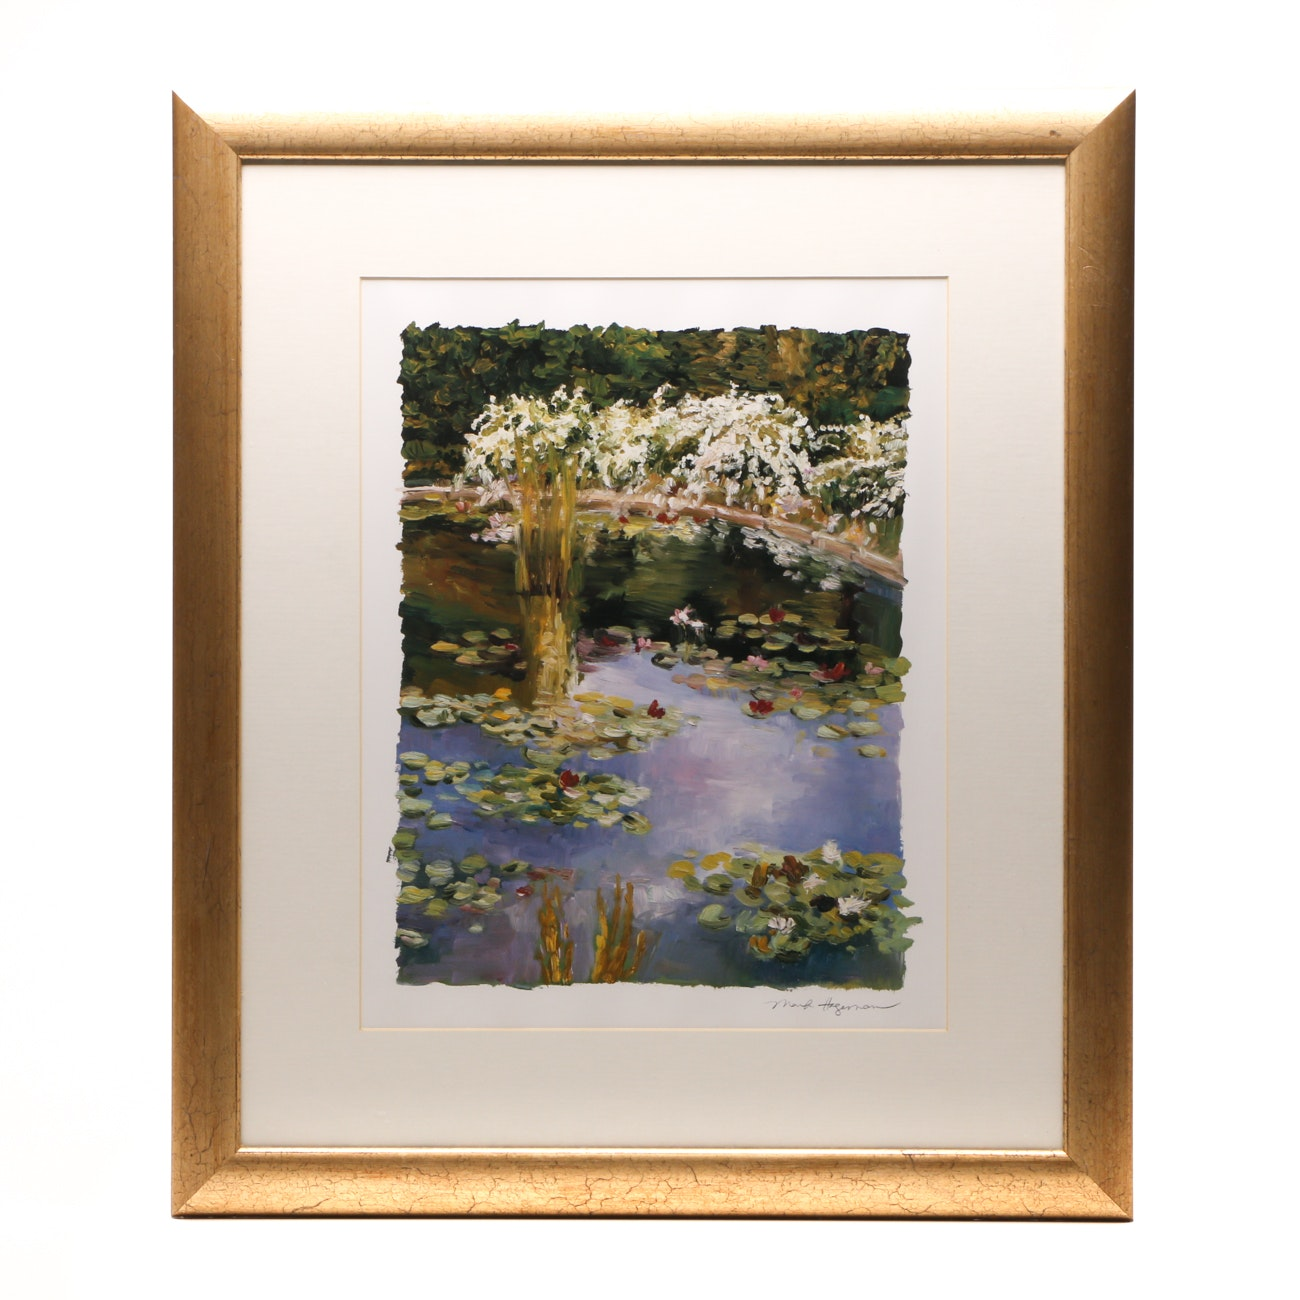 Offset Lithograph Print after Marily Hageman of Water Lilies